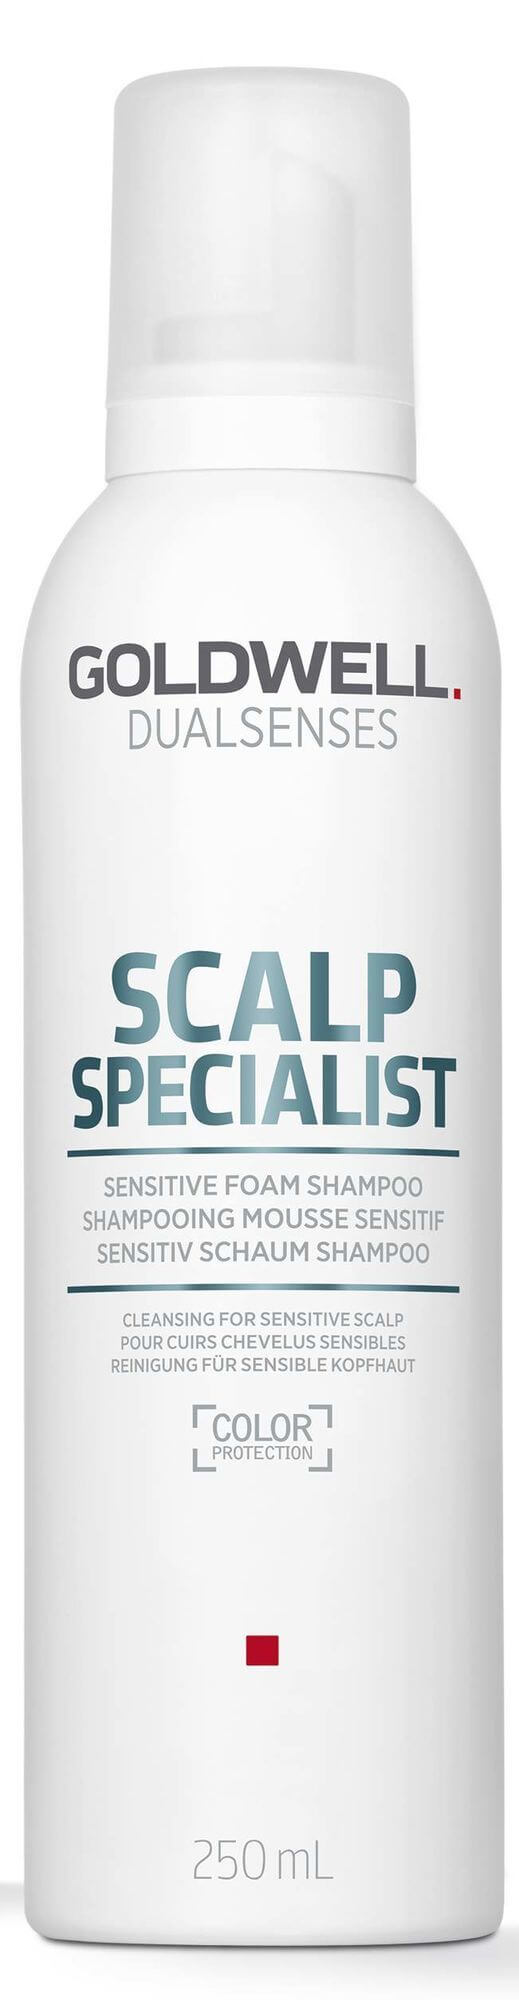 Dualsenses Scalp Specialist Sensitive Foam Shampoo